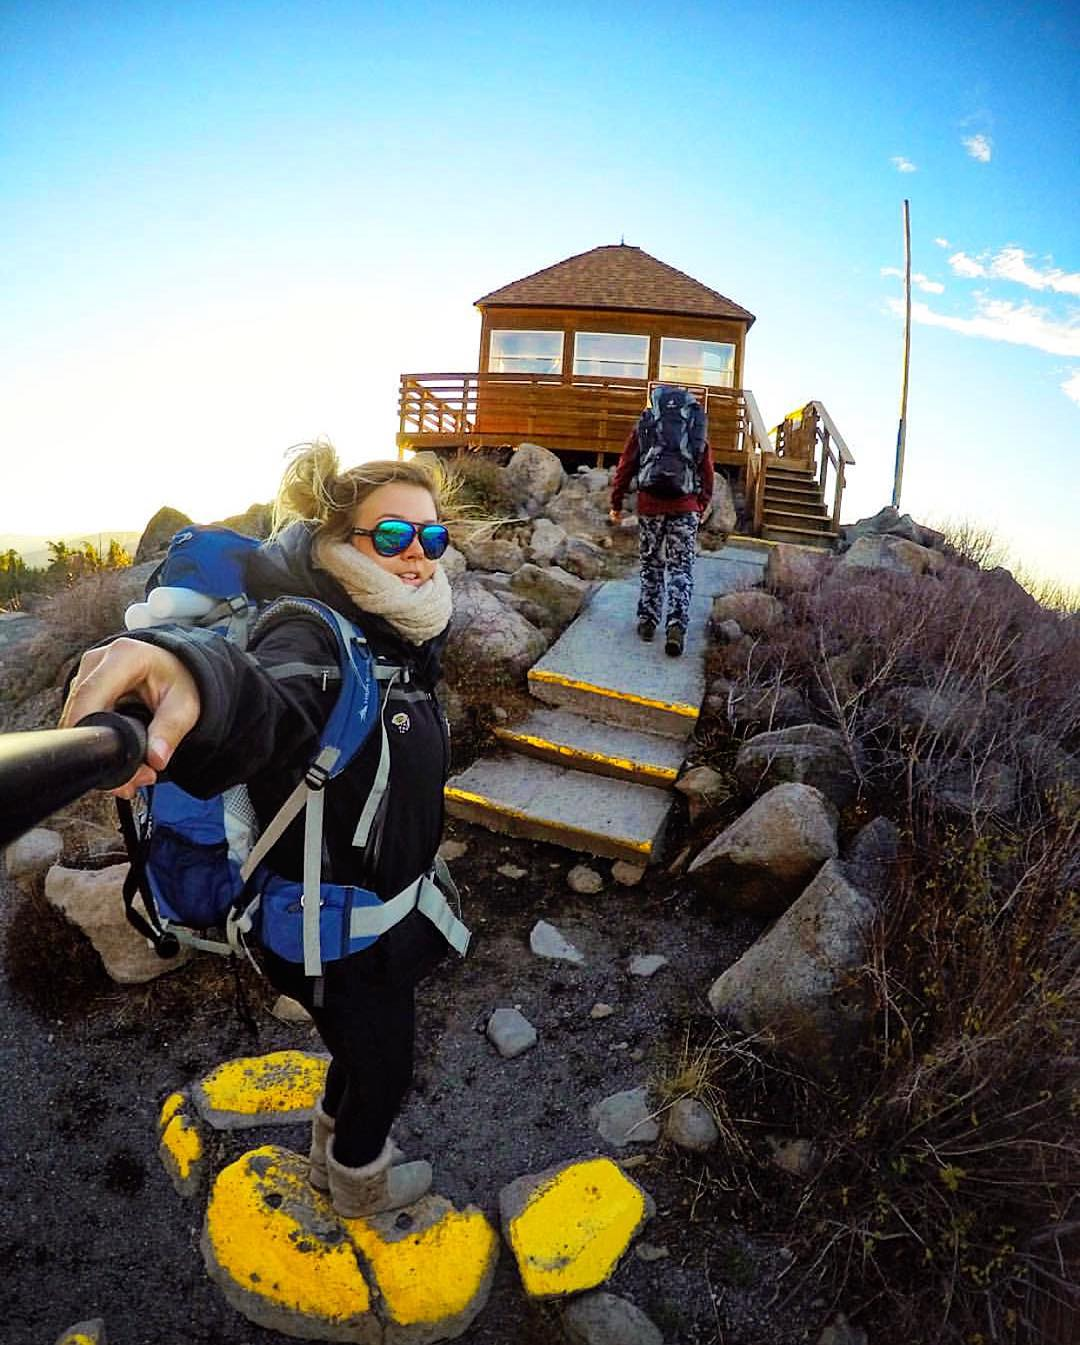 Backpacking into Lost Paradise @hannahbrie sports the Oasis shades #Kameleonz #Backpacking #GoPro